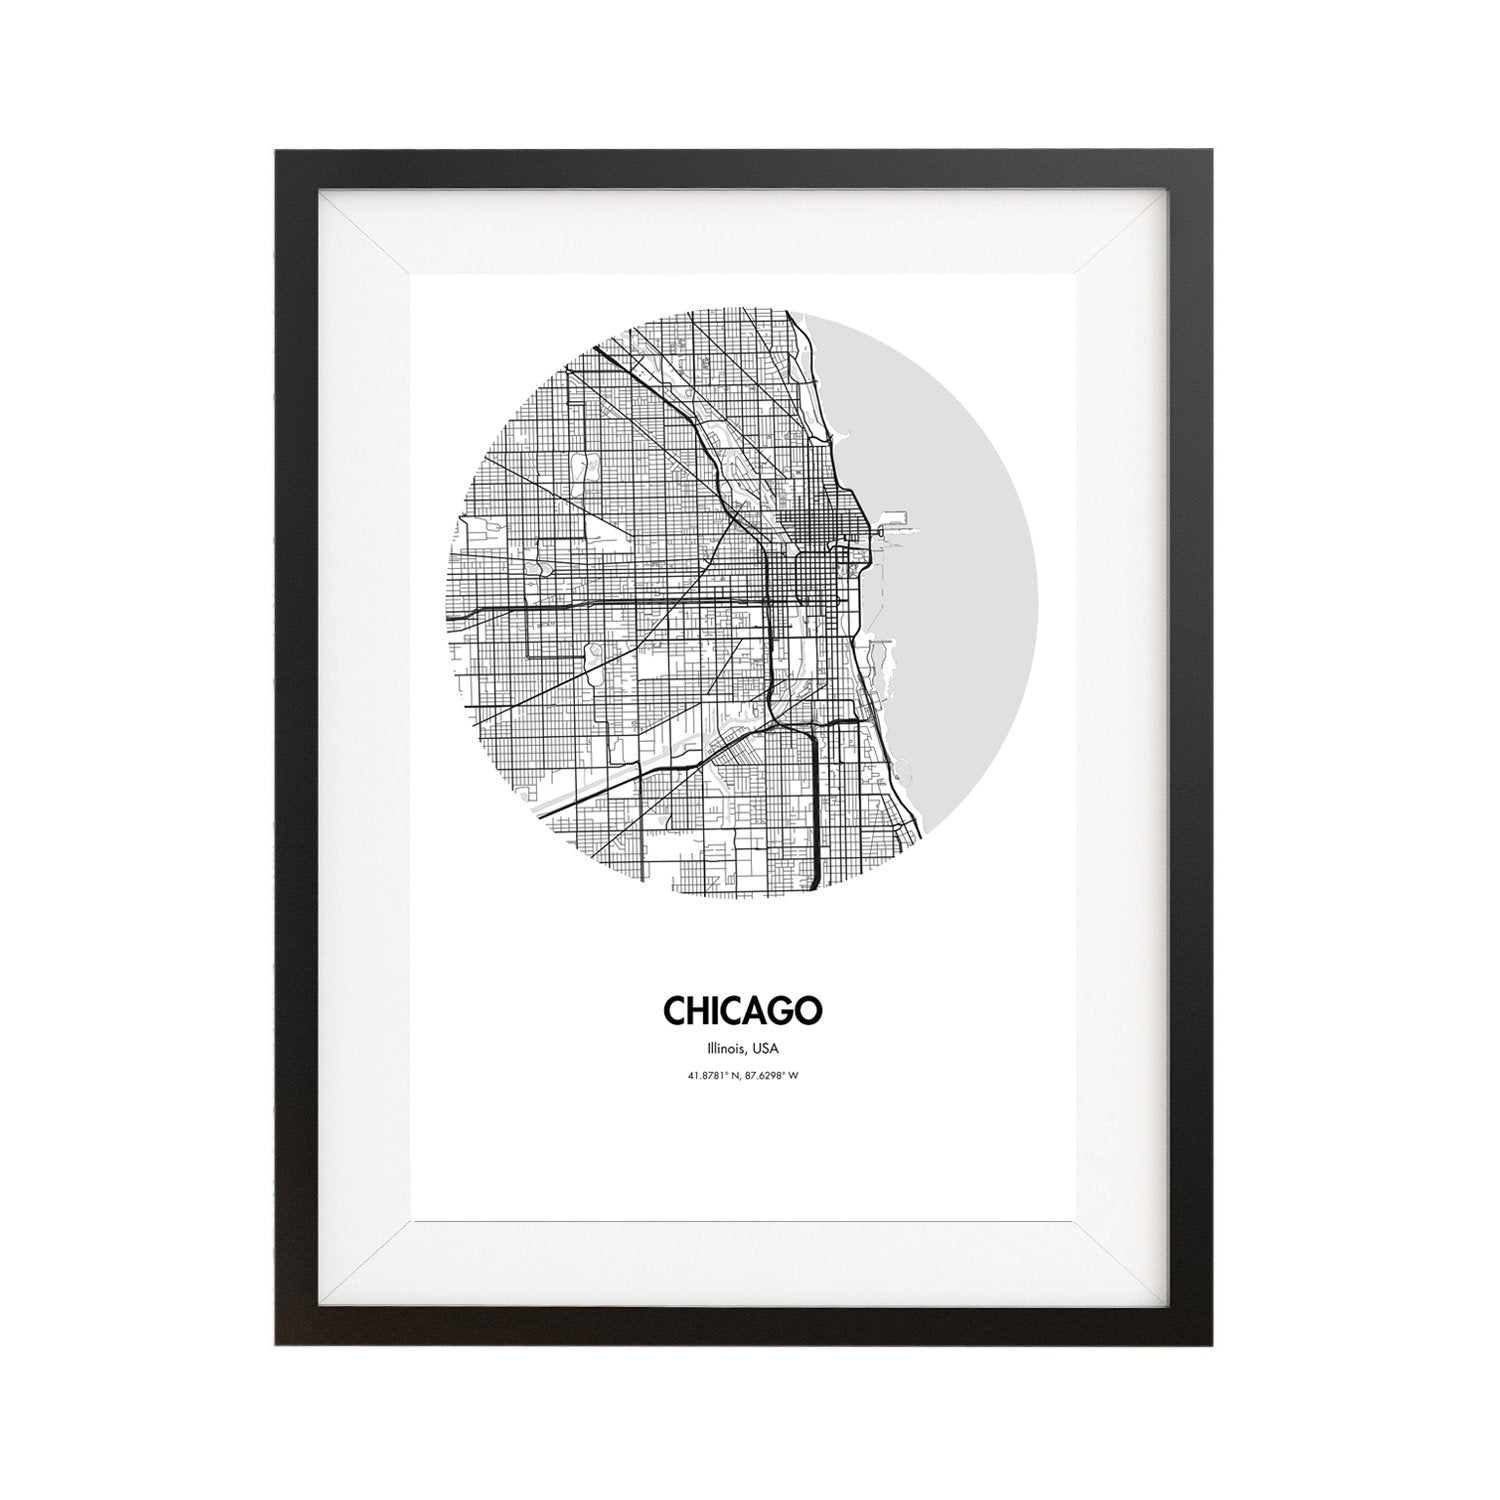 Buy Chicago Map Poster - 18 by 24 inch Map Print on